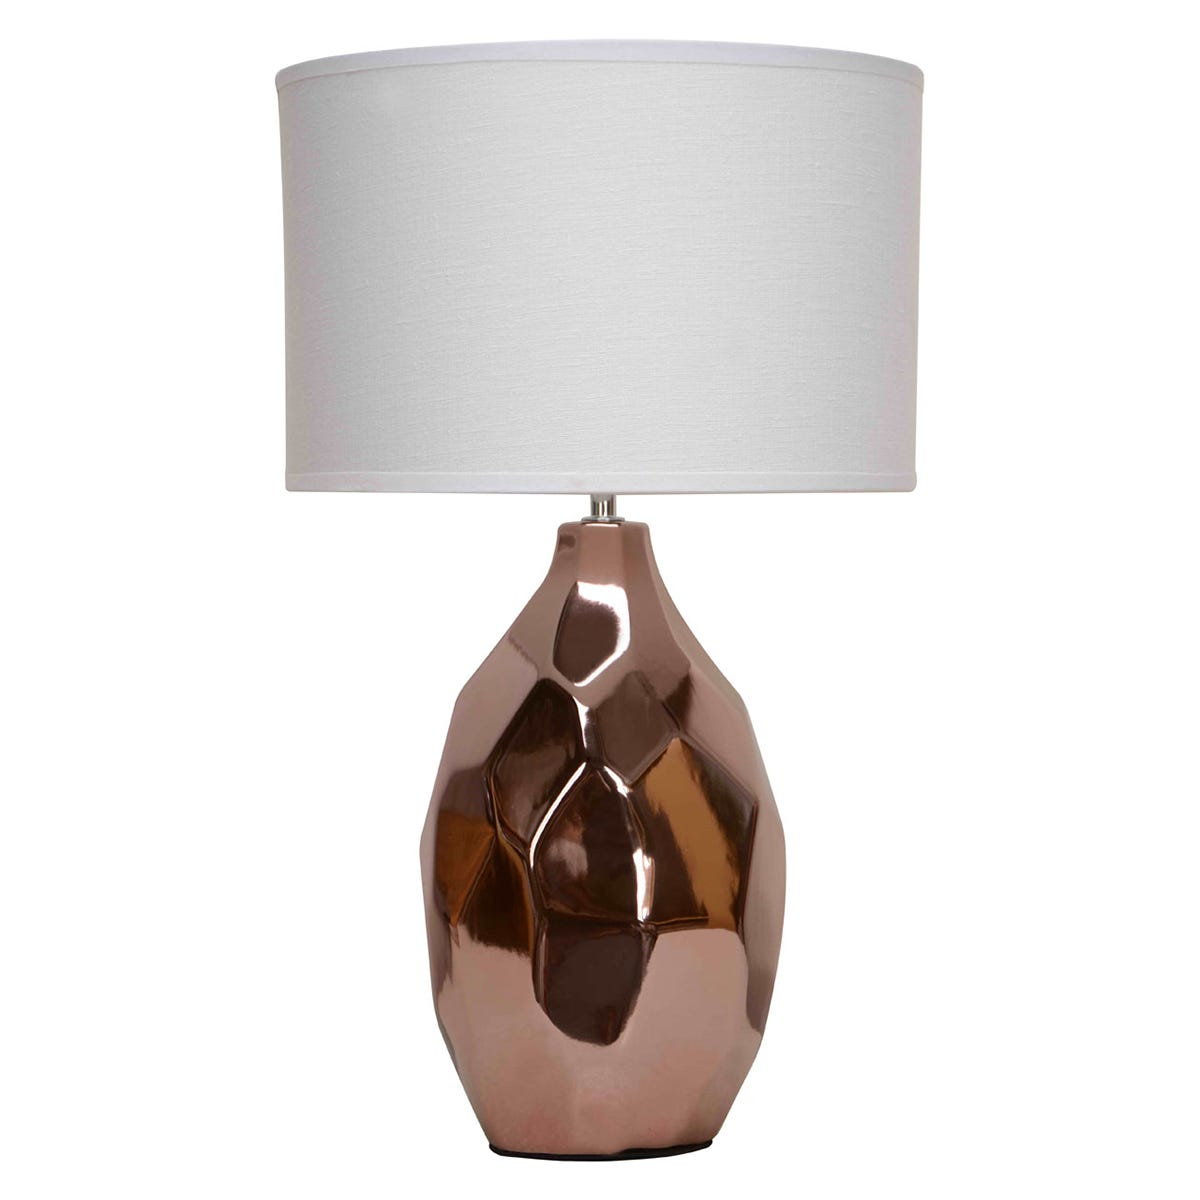 Premier Housewares West Table Lamp in Copper Ceramic Base with Ivory Fabric Shade